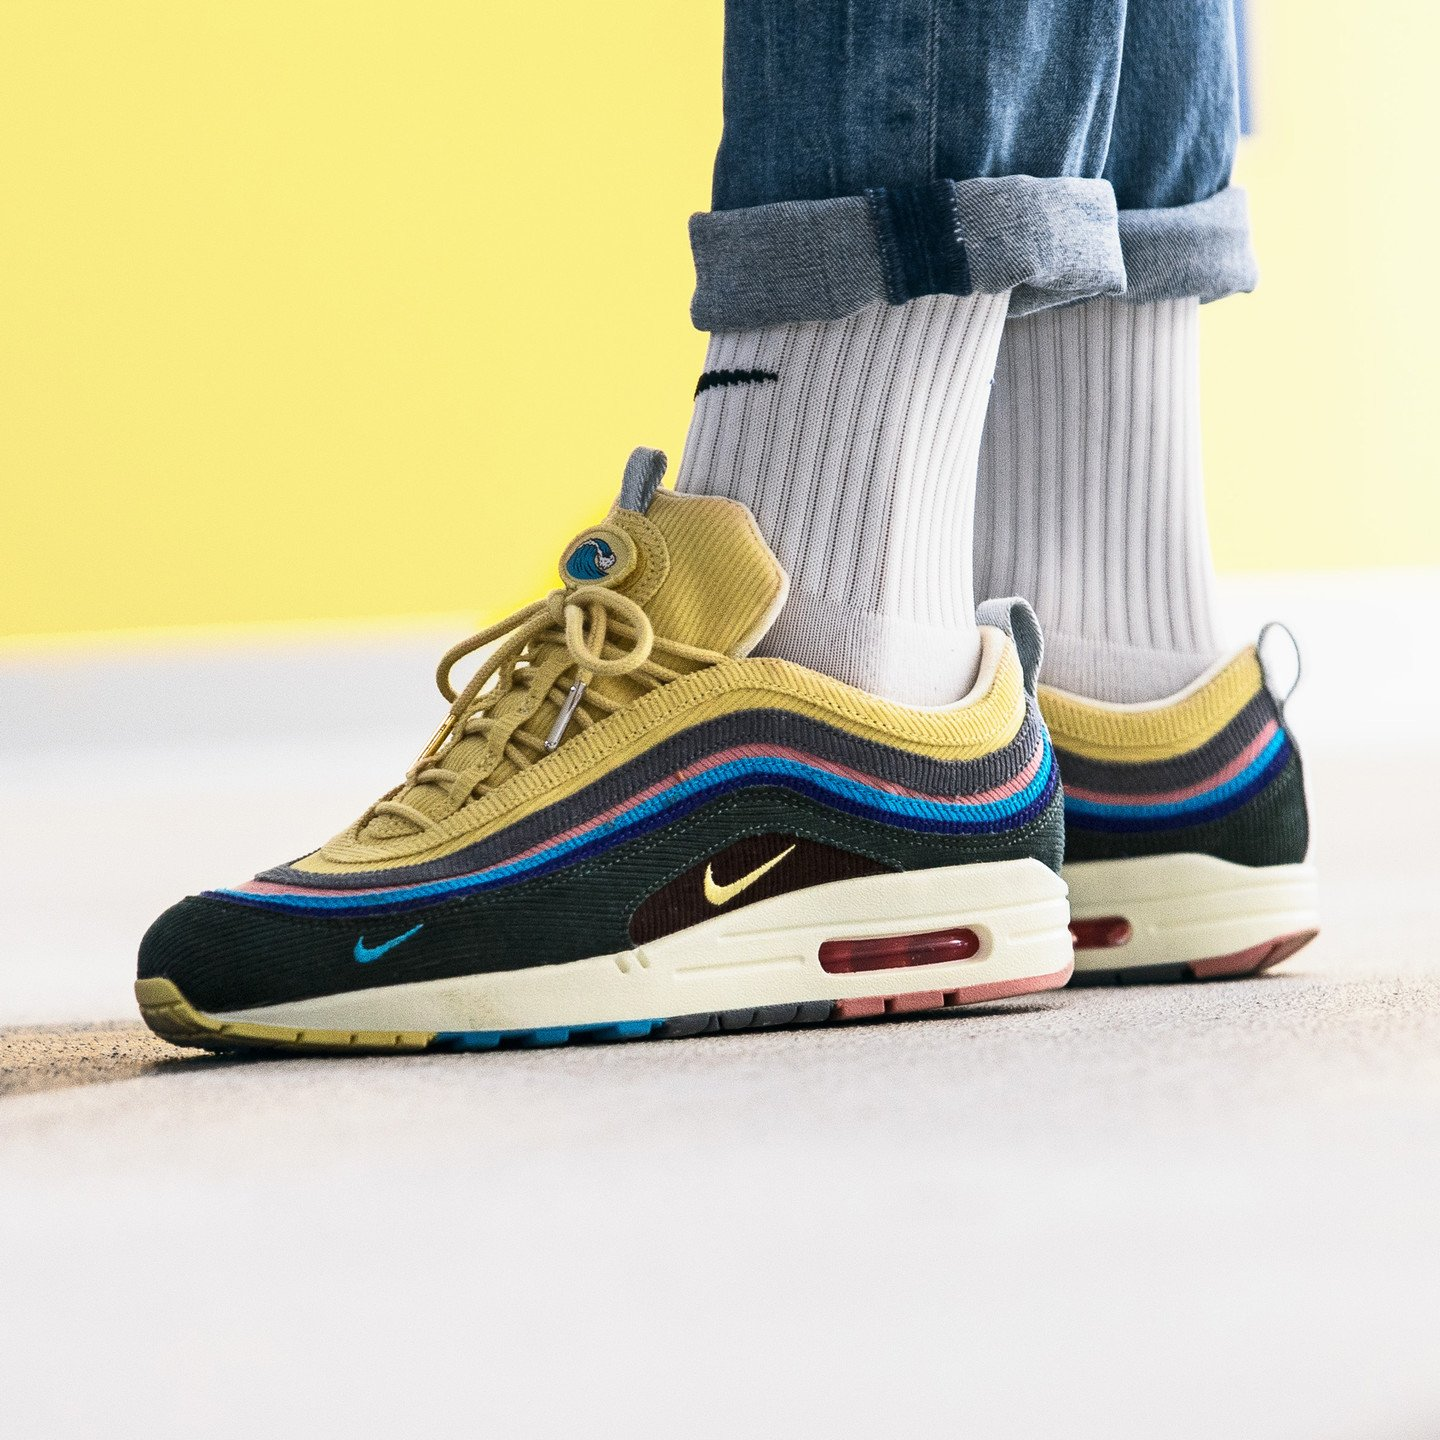 Nike Air Max 1/97 VF 'Sean Wotherspoon' Lt Blue / Fury / Lemon Wash / Vintage Green AJ4219-400